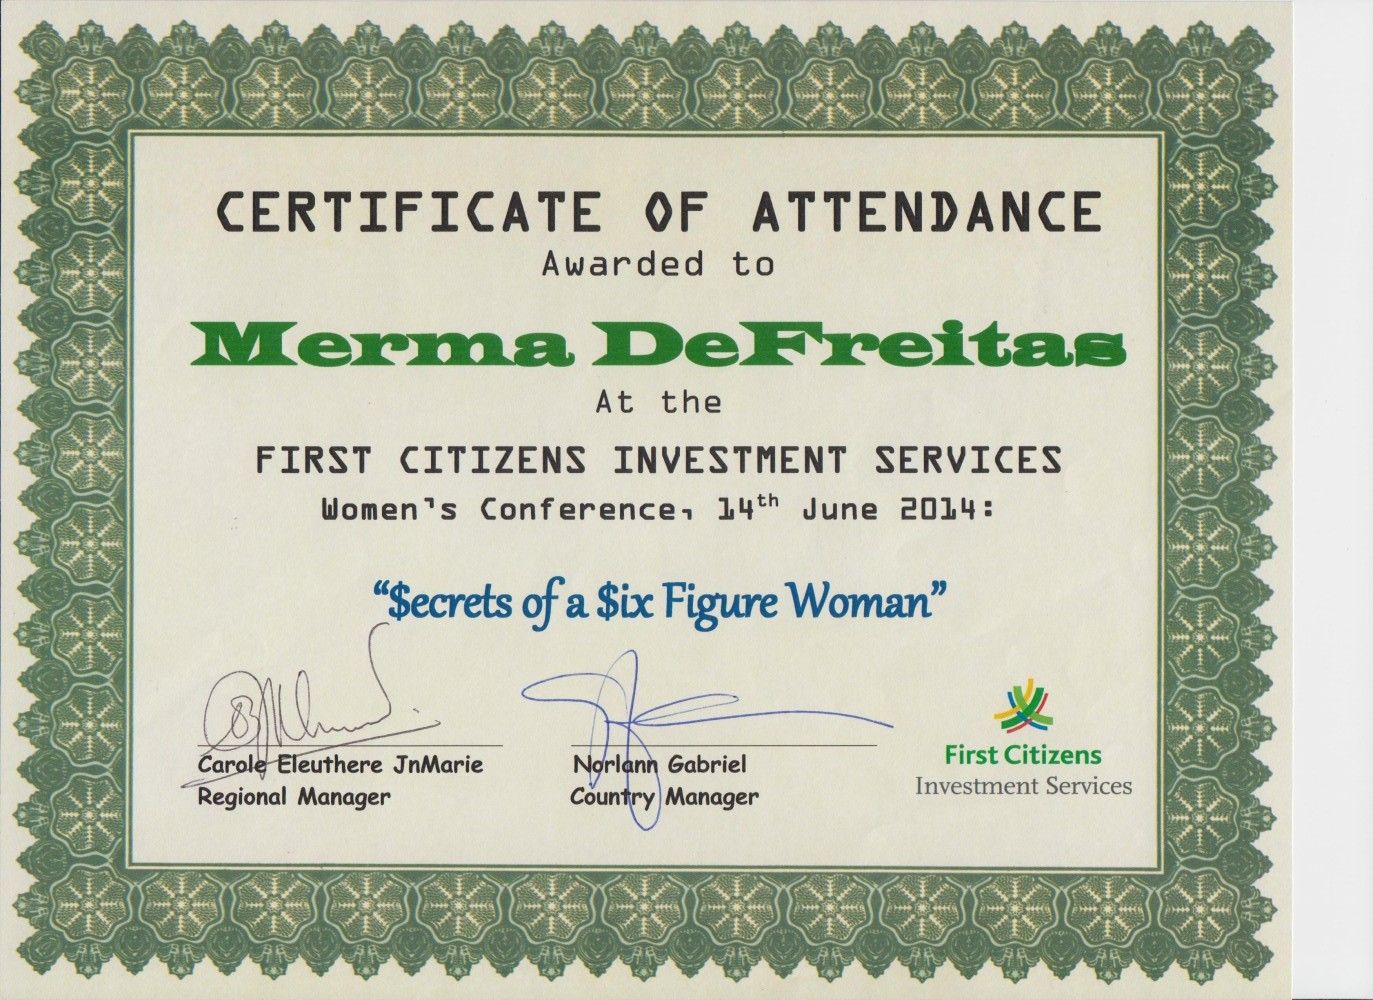 Wilfred Services present at the First Citizens Investment Services Women's Conference